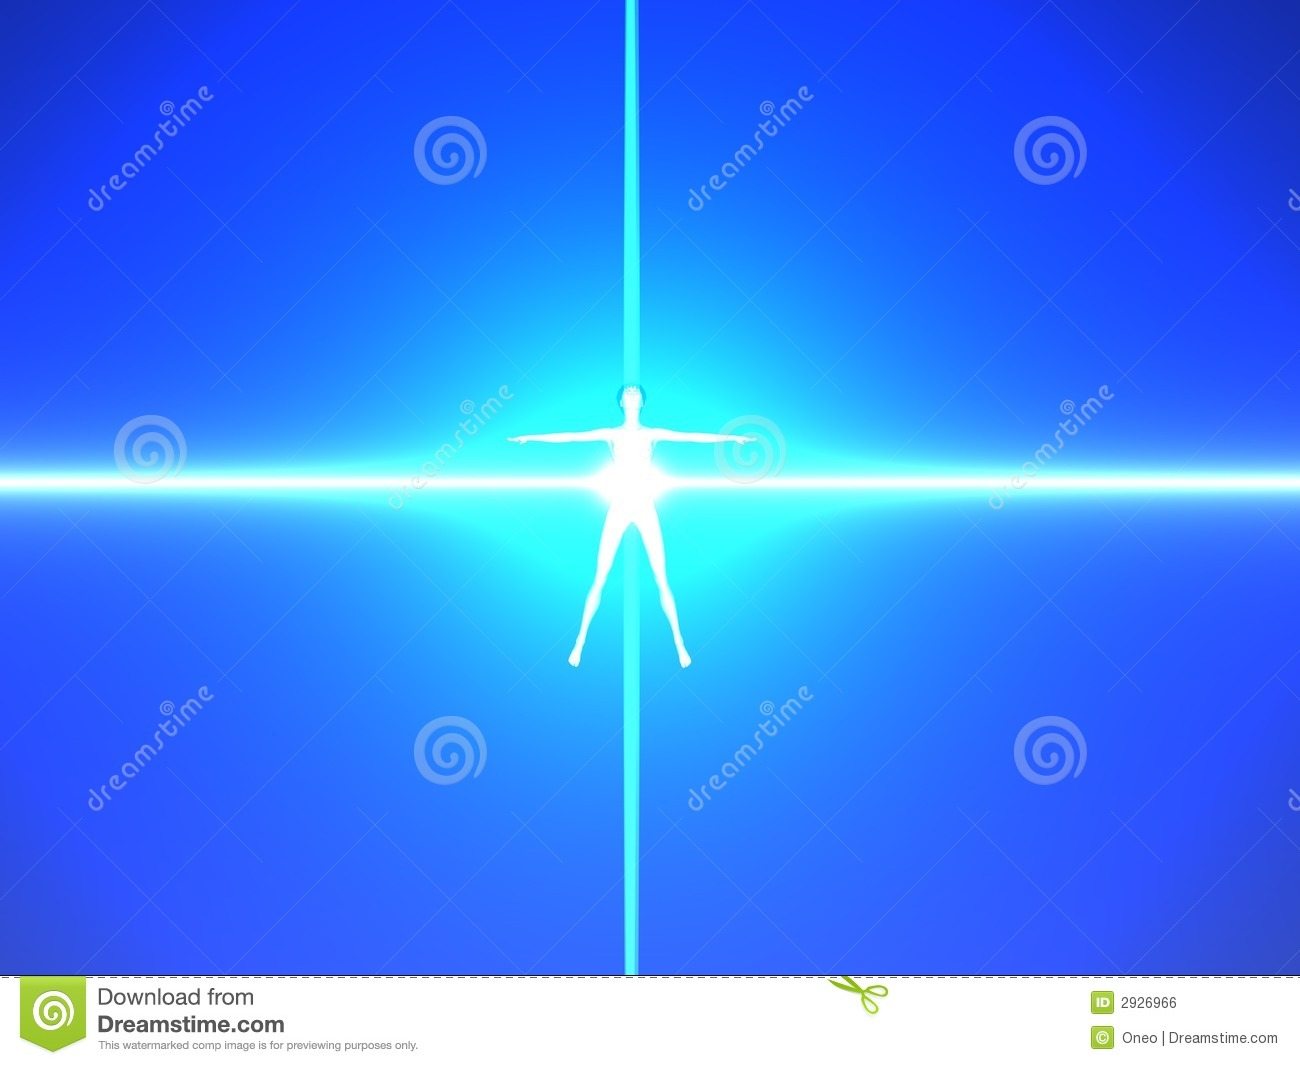 Human Body In Blue Power Rays Royalty Free Stock Image ...